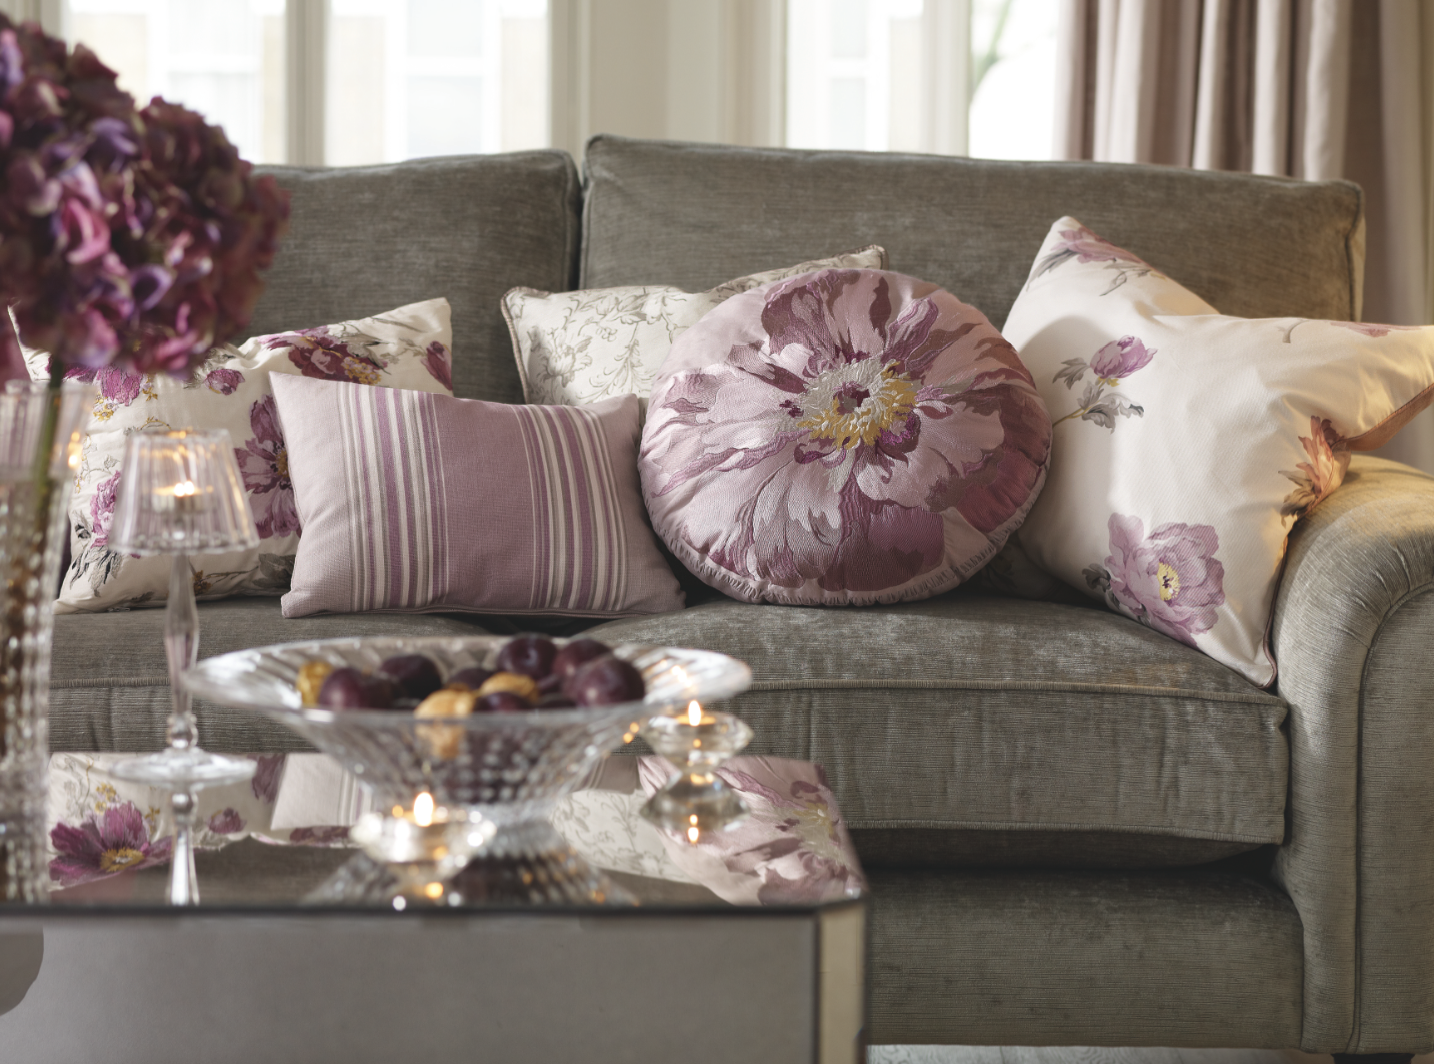 Peony amethyst collection lavender roomlavender and grey living